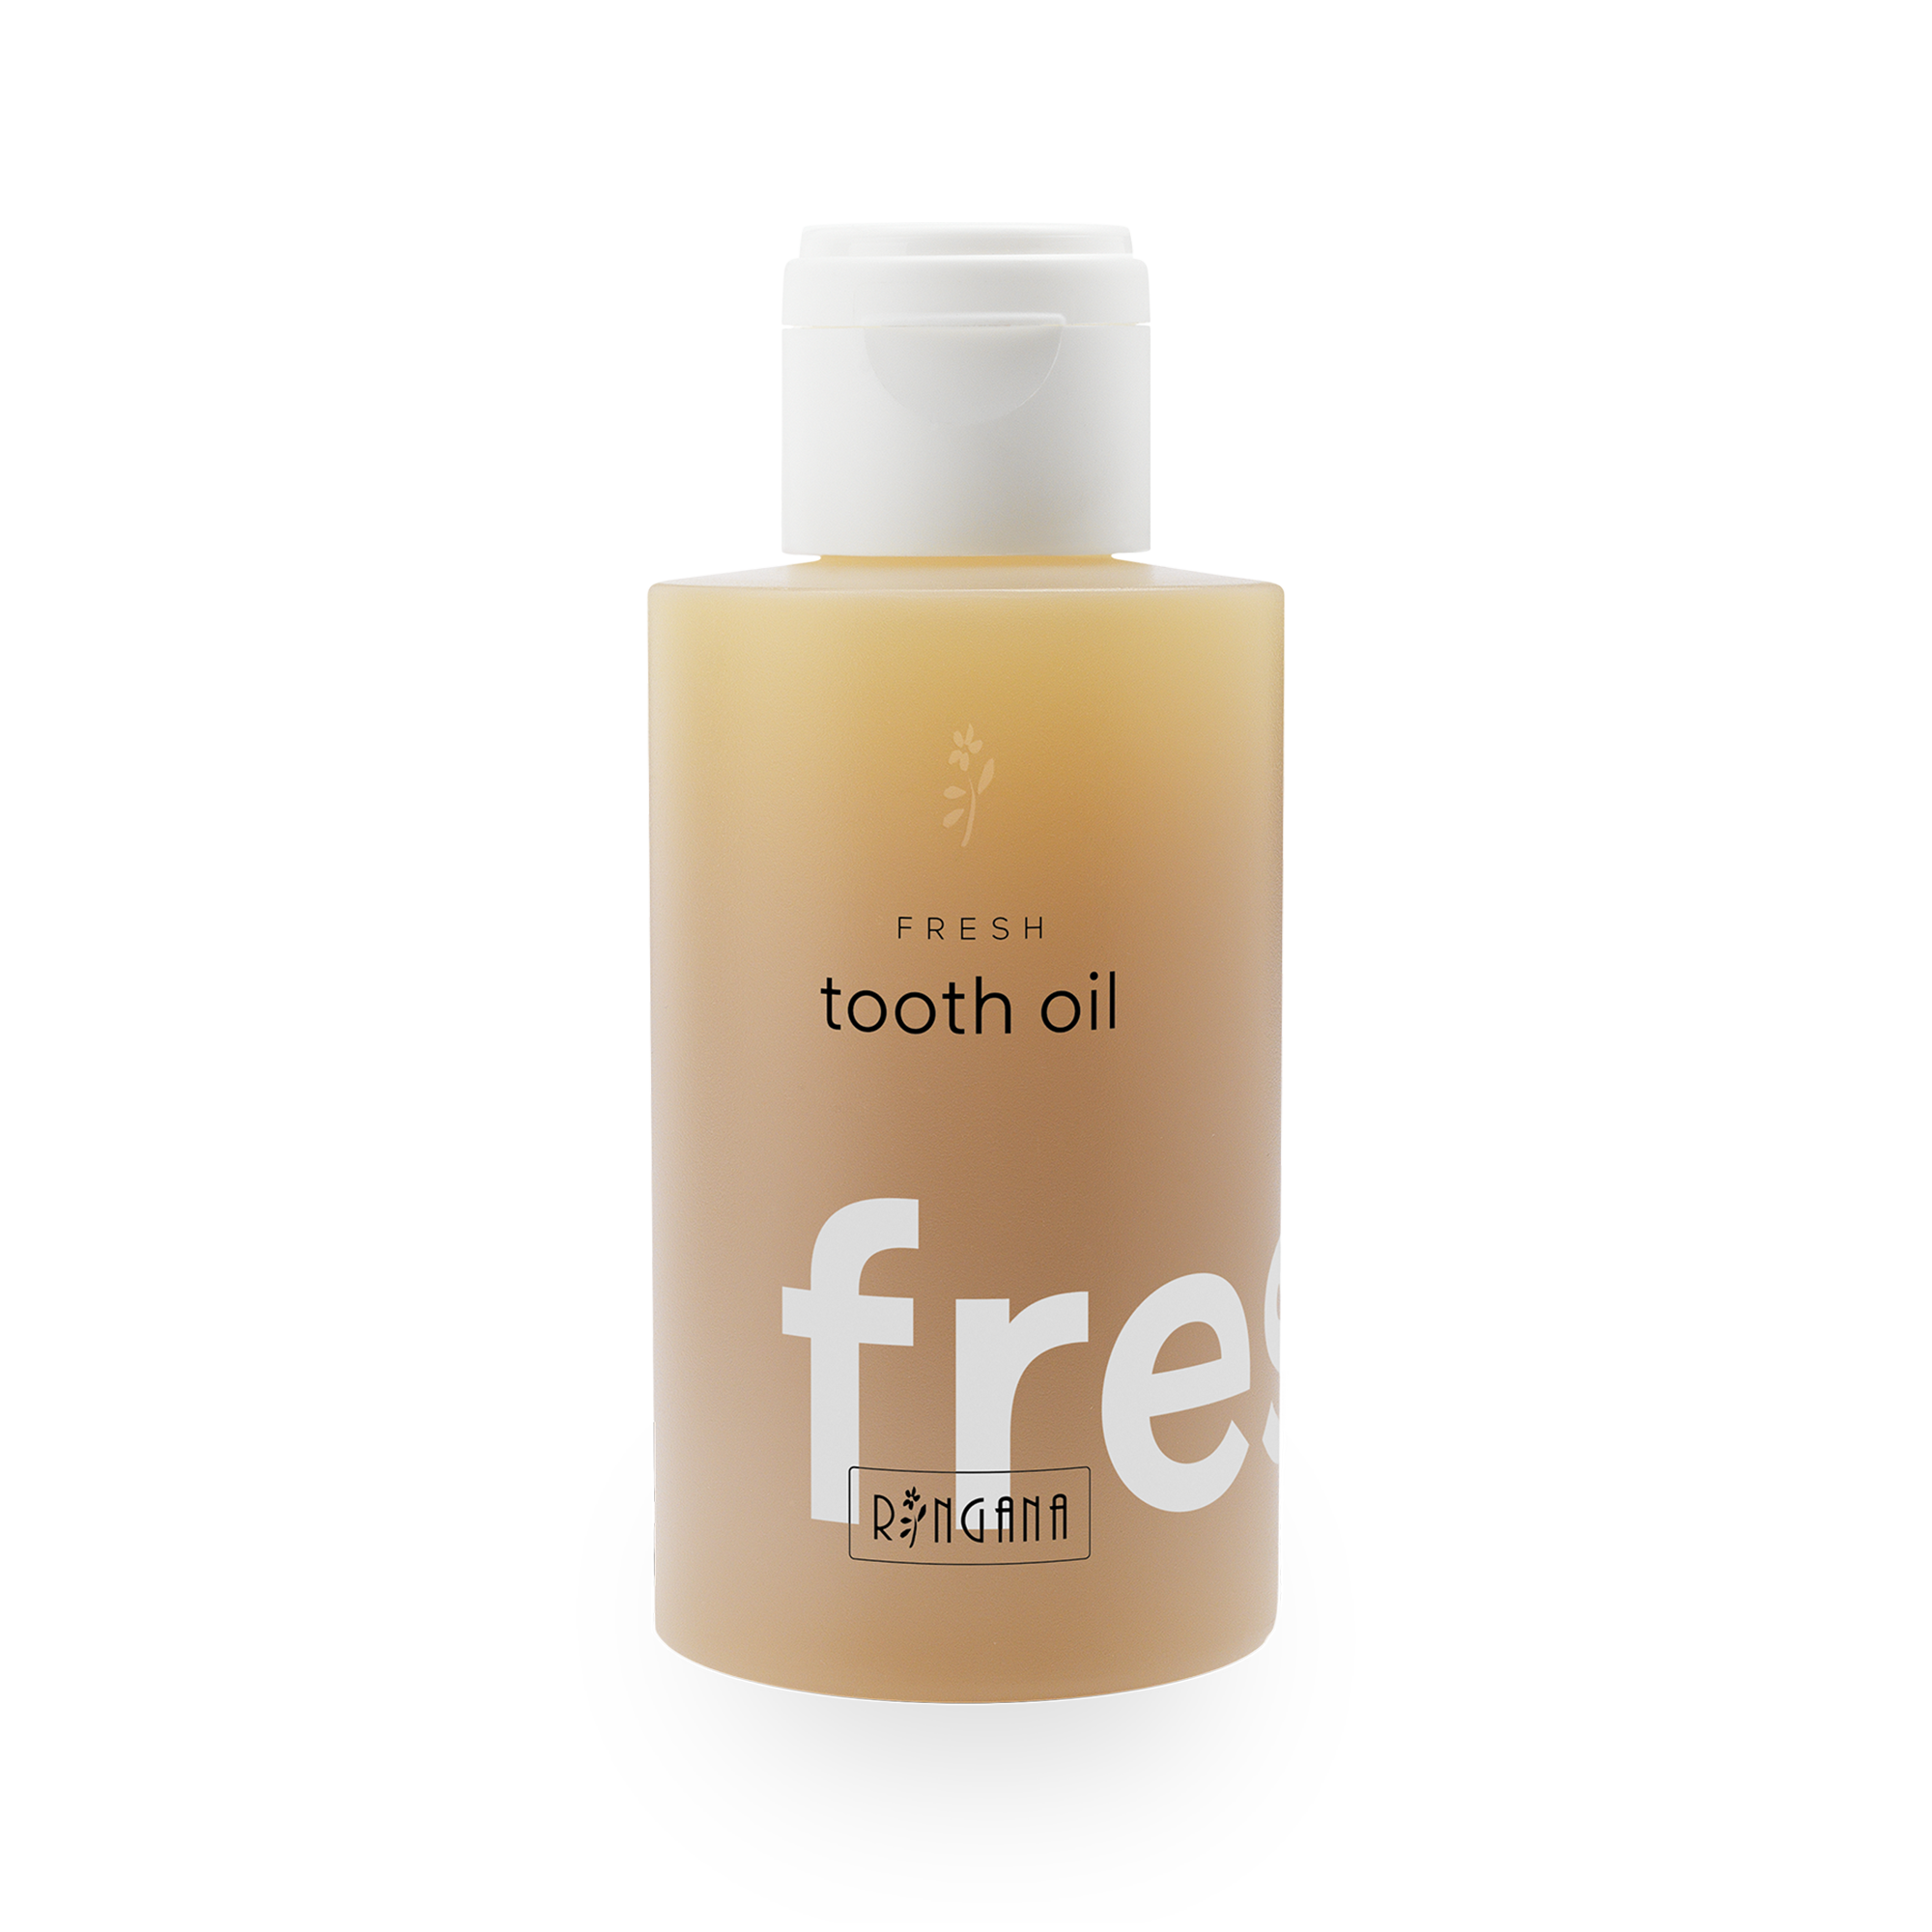 FRESH tooth oil - Teeth and gums125 ml - € 12,60Effective oil-based tooth care: our FRESH tooth oil derives from the tradition of oil-drawing. This involves moving some oil around in the mouth and then spitting it out. The point of doing this is that the tooth oil binds bacteria in the oral cavity. RINGANA goes one step further, offering a tooth oil that replaces toothpaste.